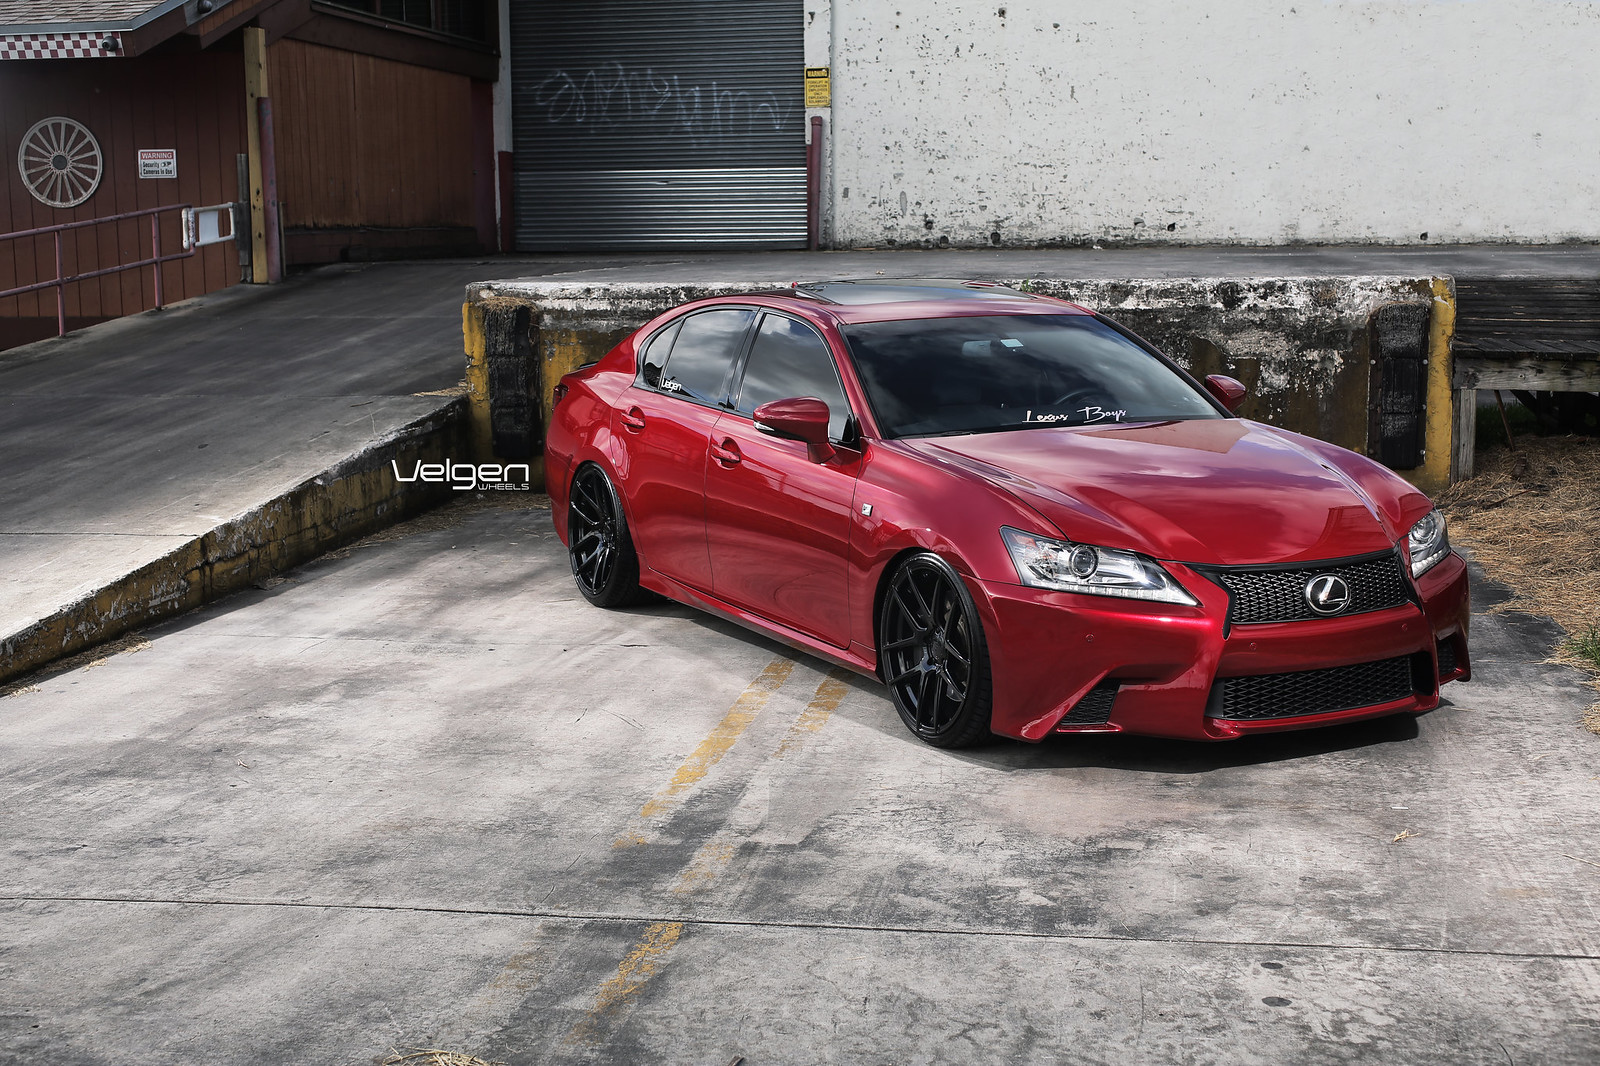 2013 Lexus GS350 F Sport Velgen Wheels Beautiful